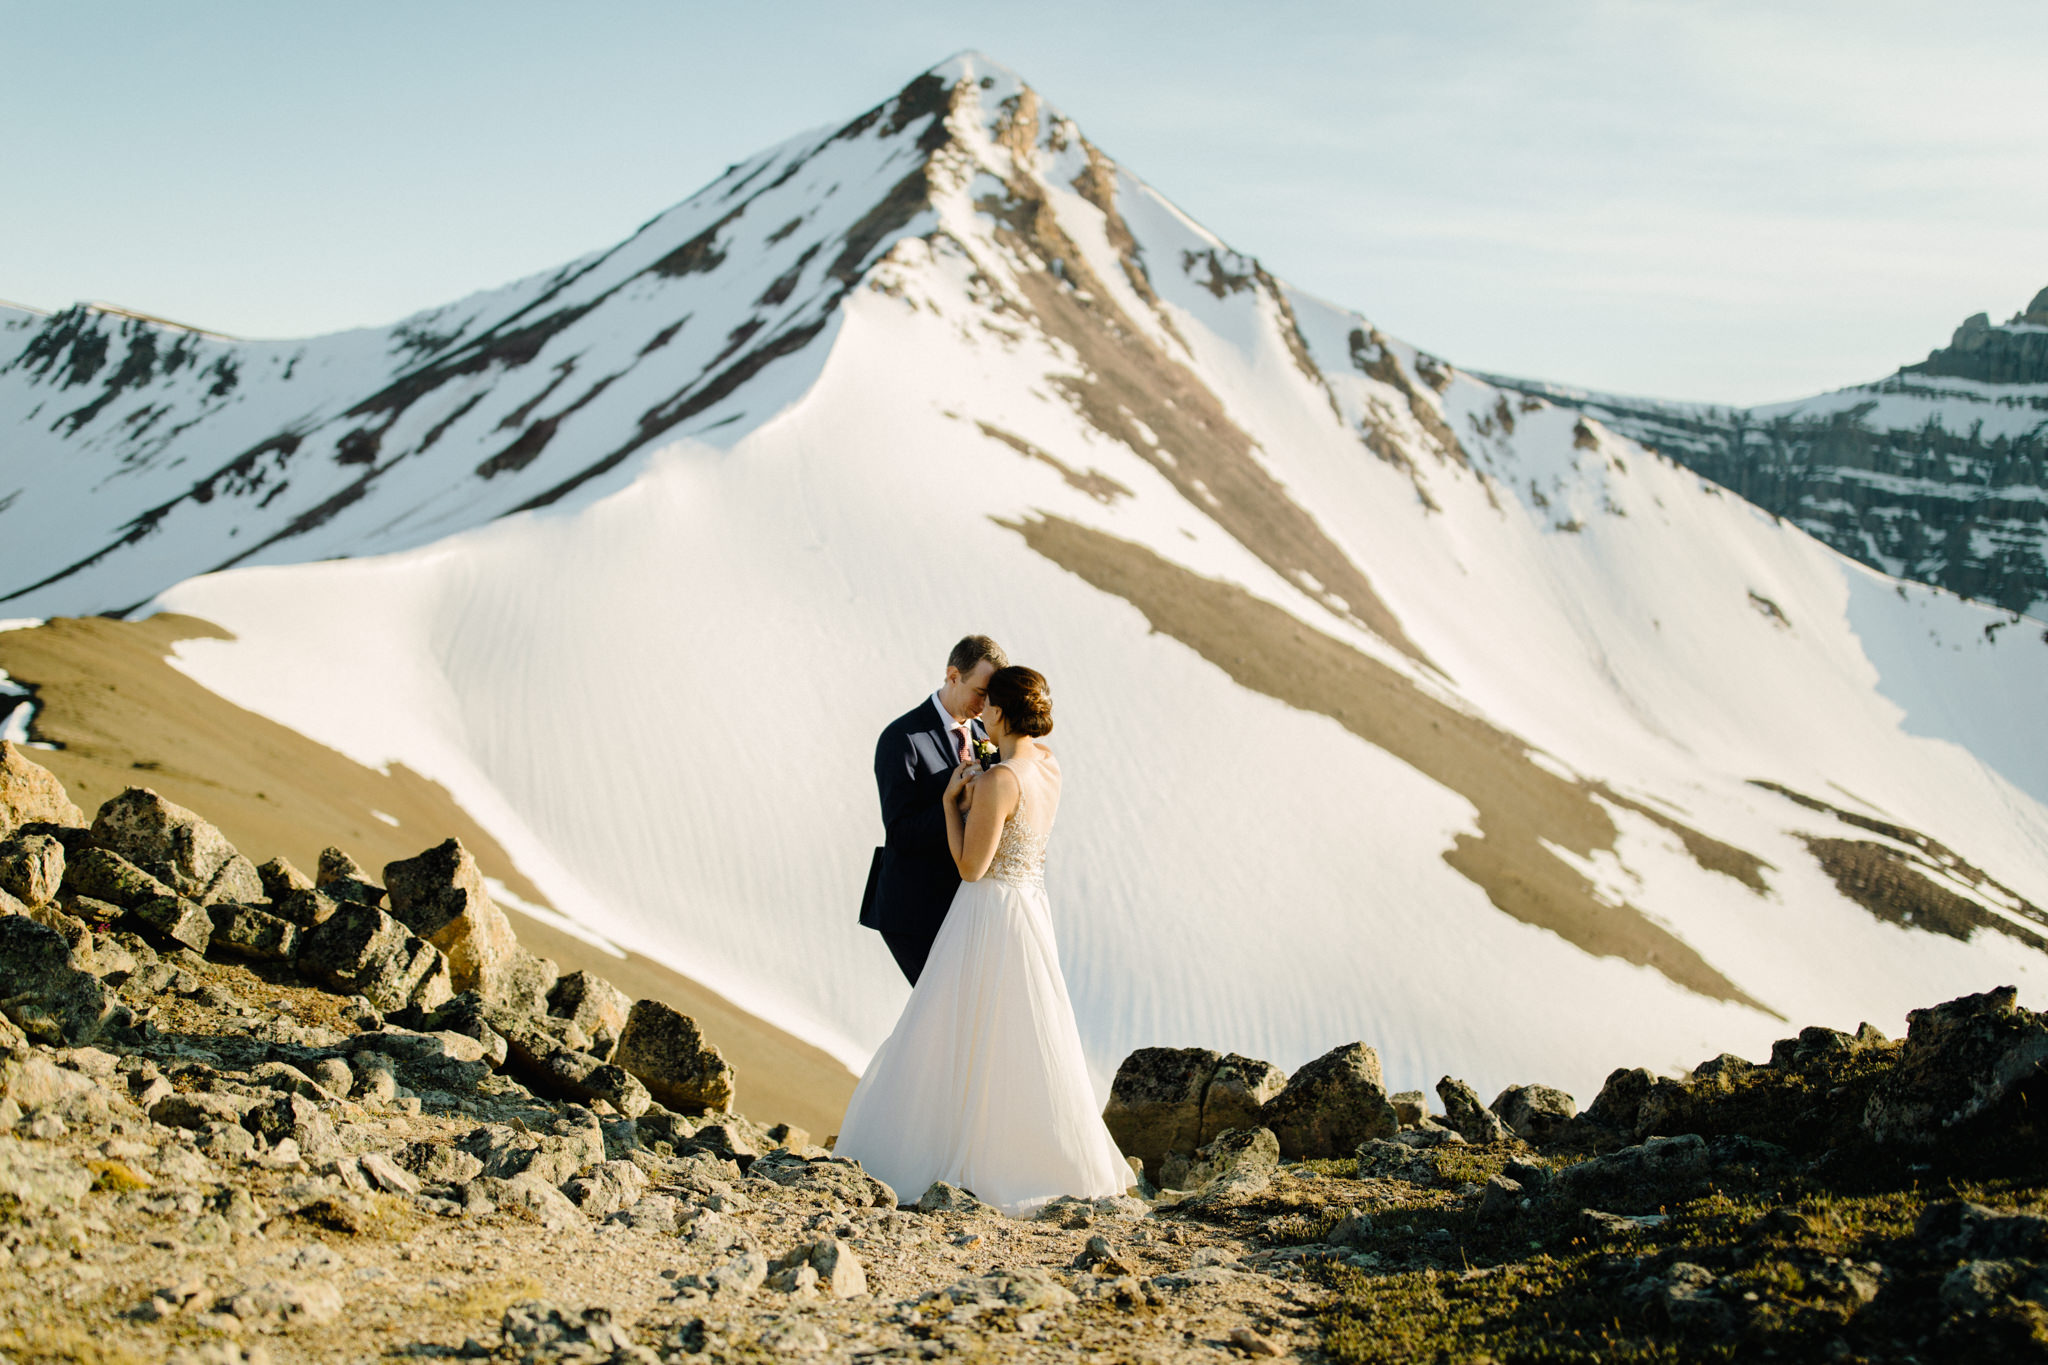 Helicopter Weddings in Banff